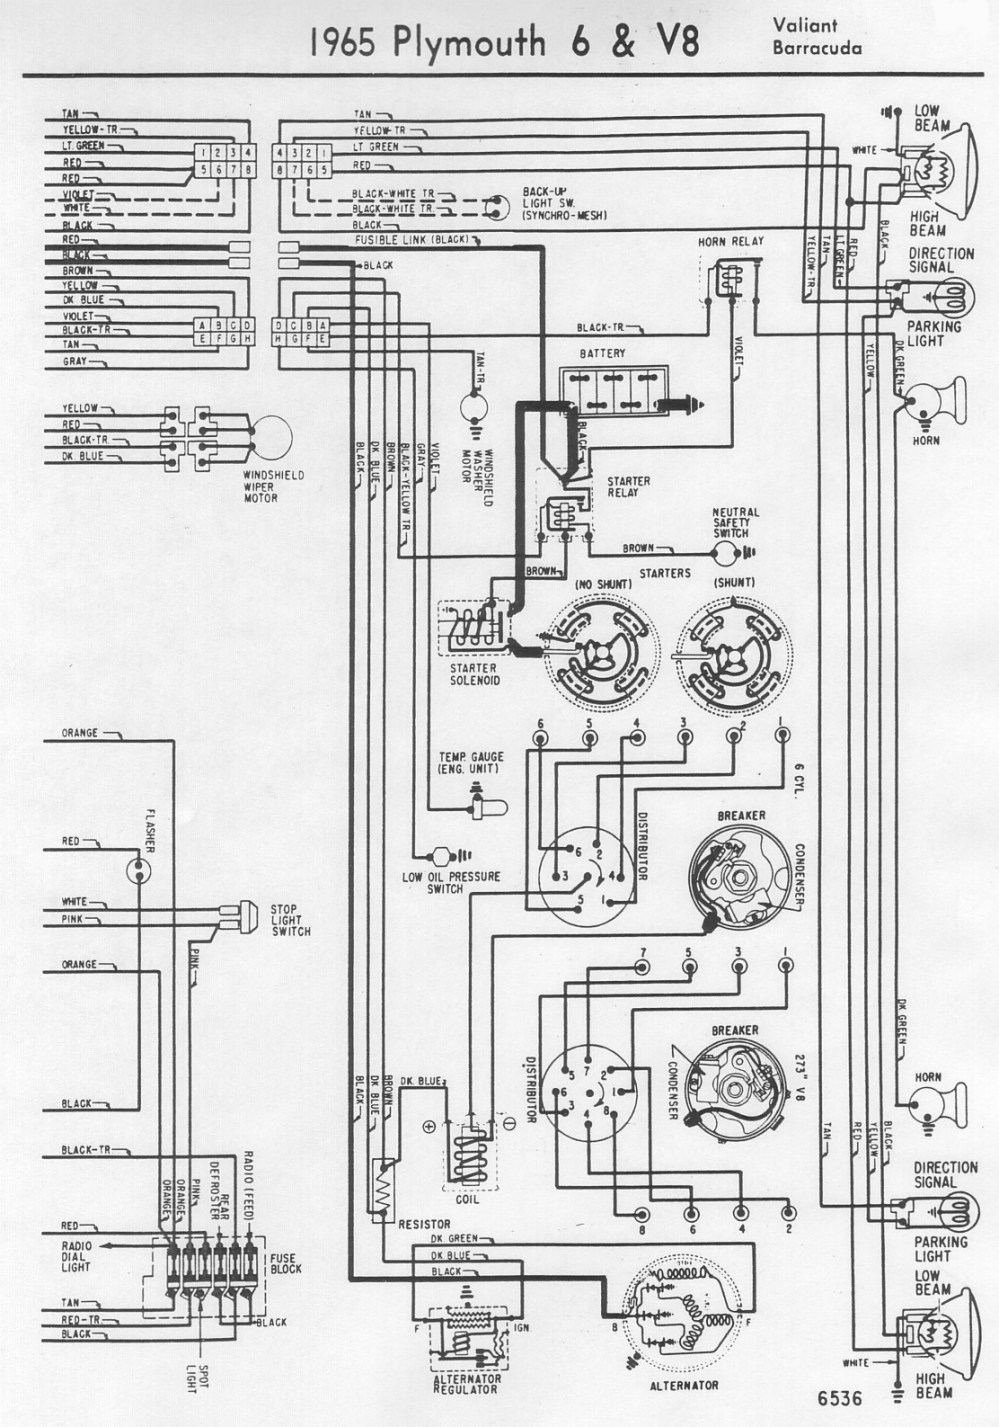 medium resolution of 1968 barracuda wiring diagram wiring diagram site 1968 plymouth barracuda wiring diagram 1968 barracuda wiring diagram